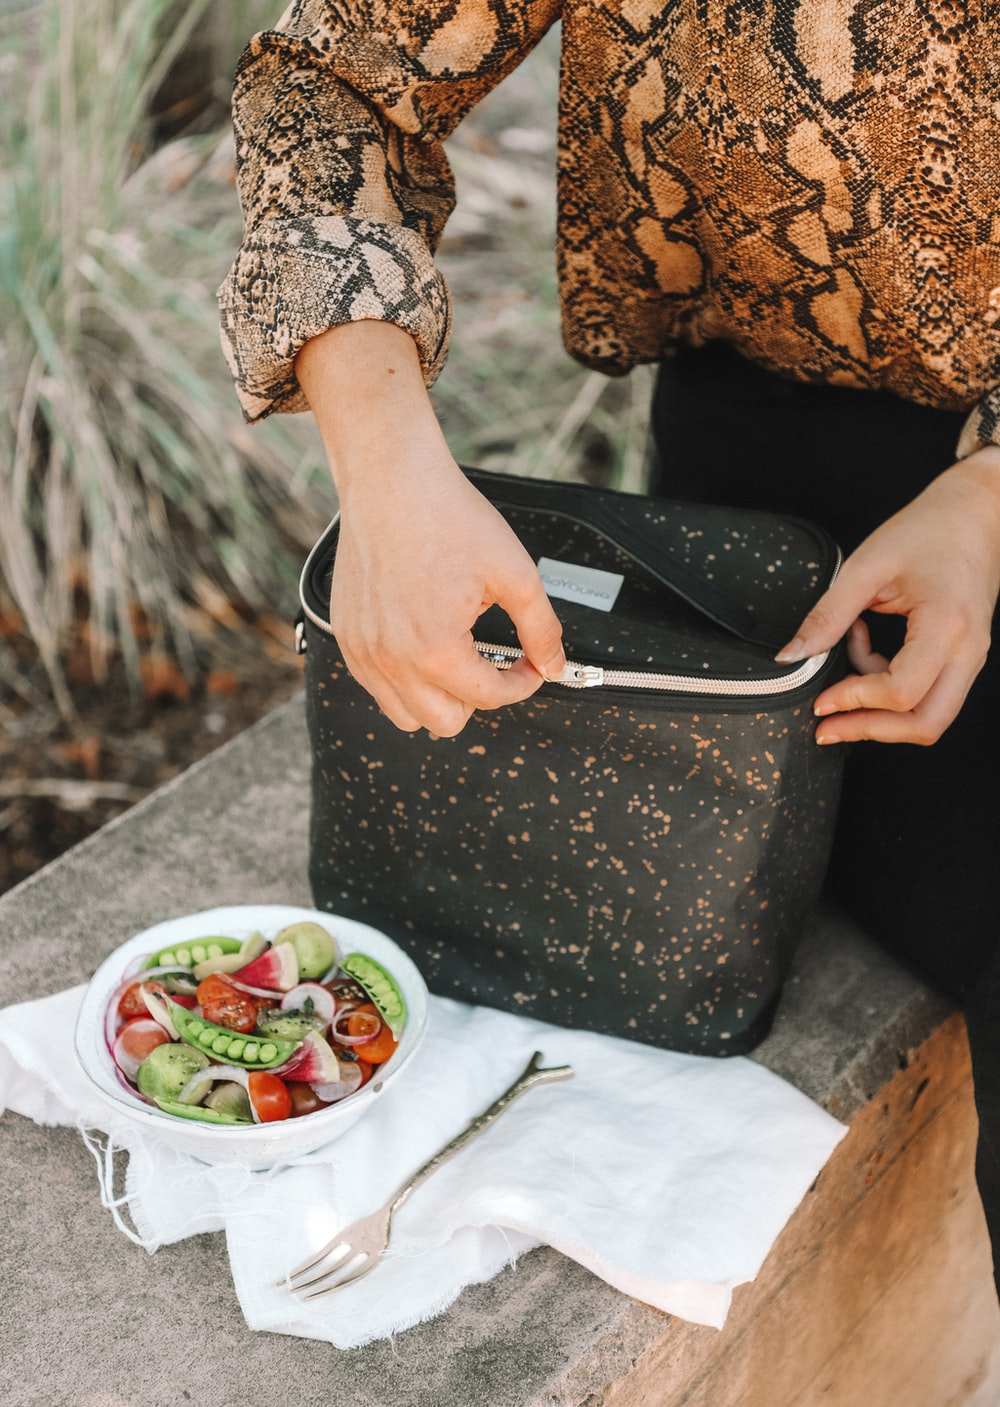 woman opening lunch bag near bowl of salad